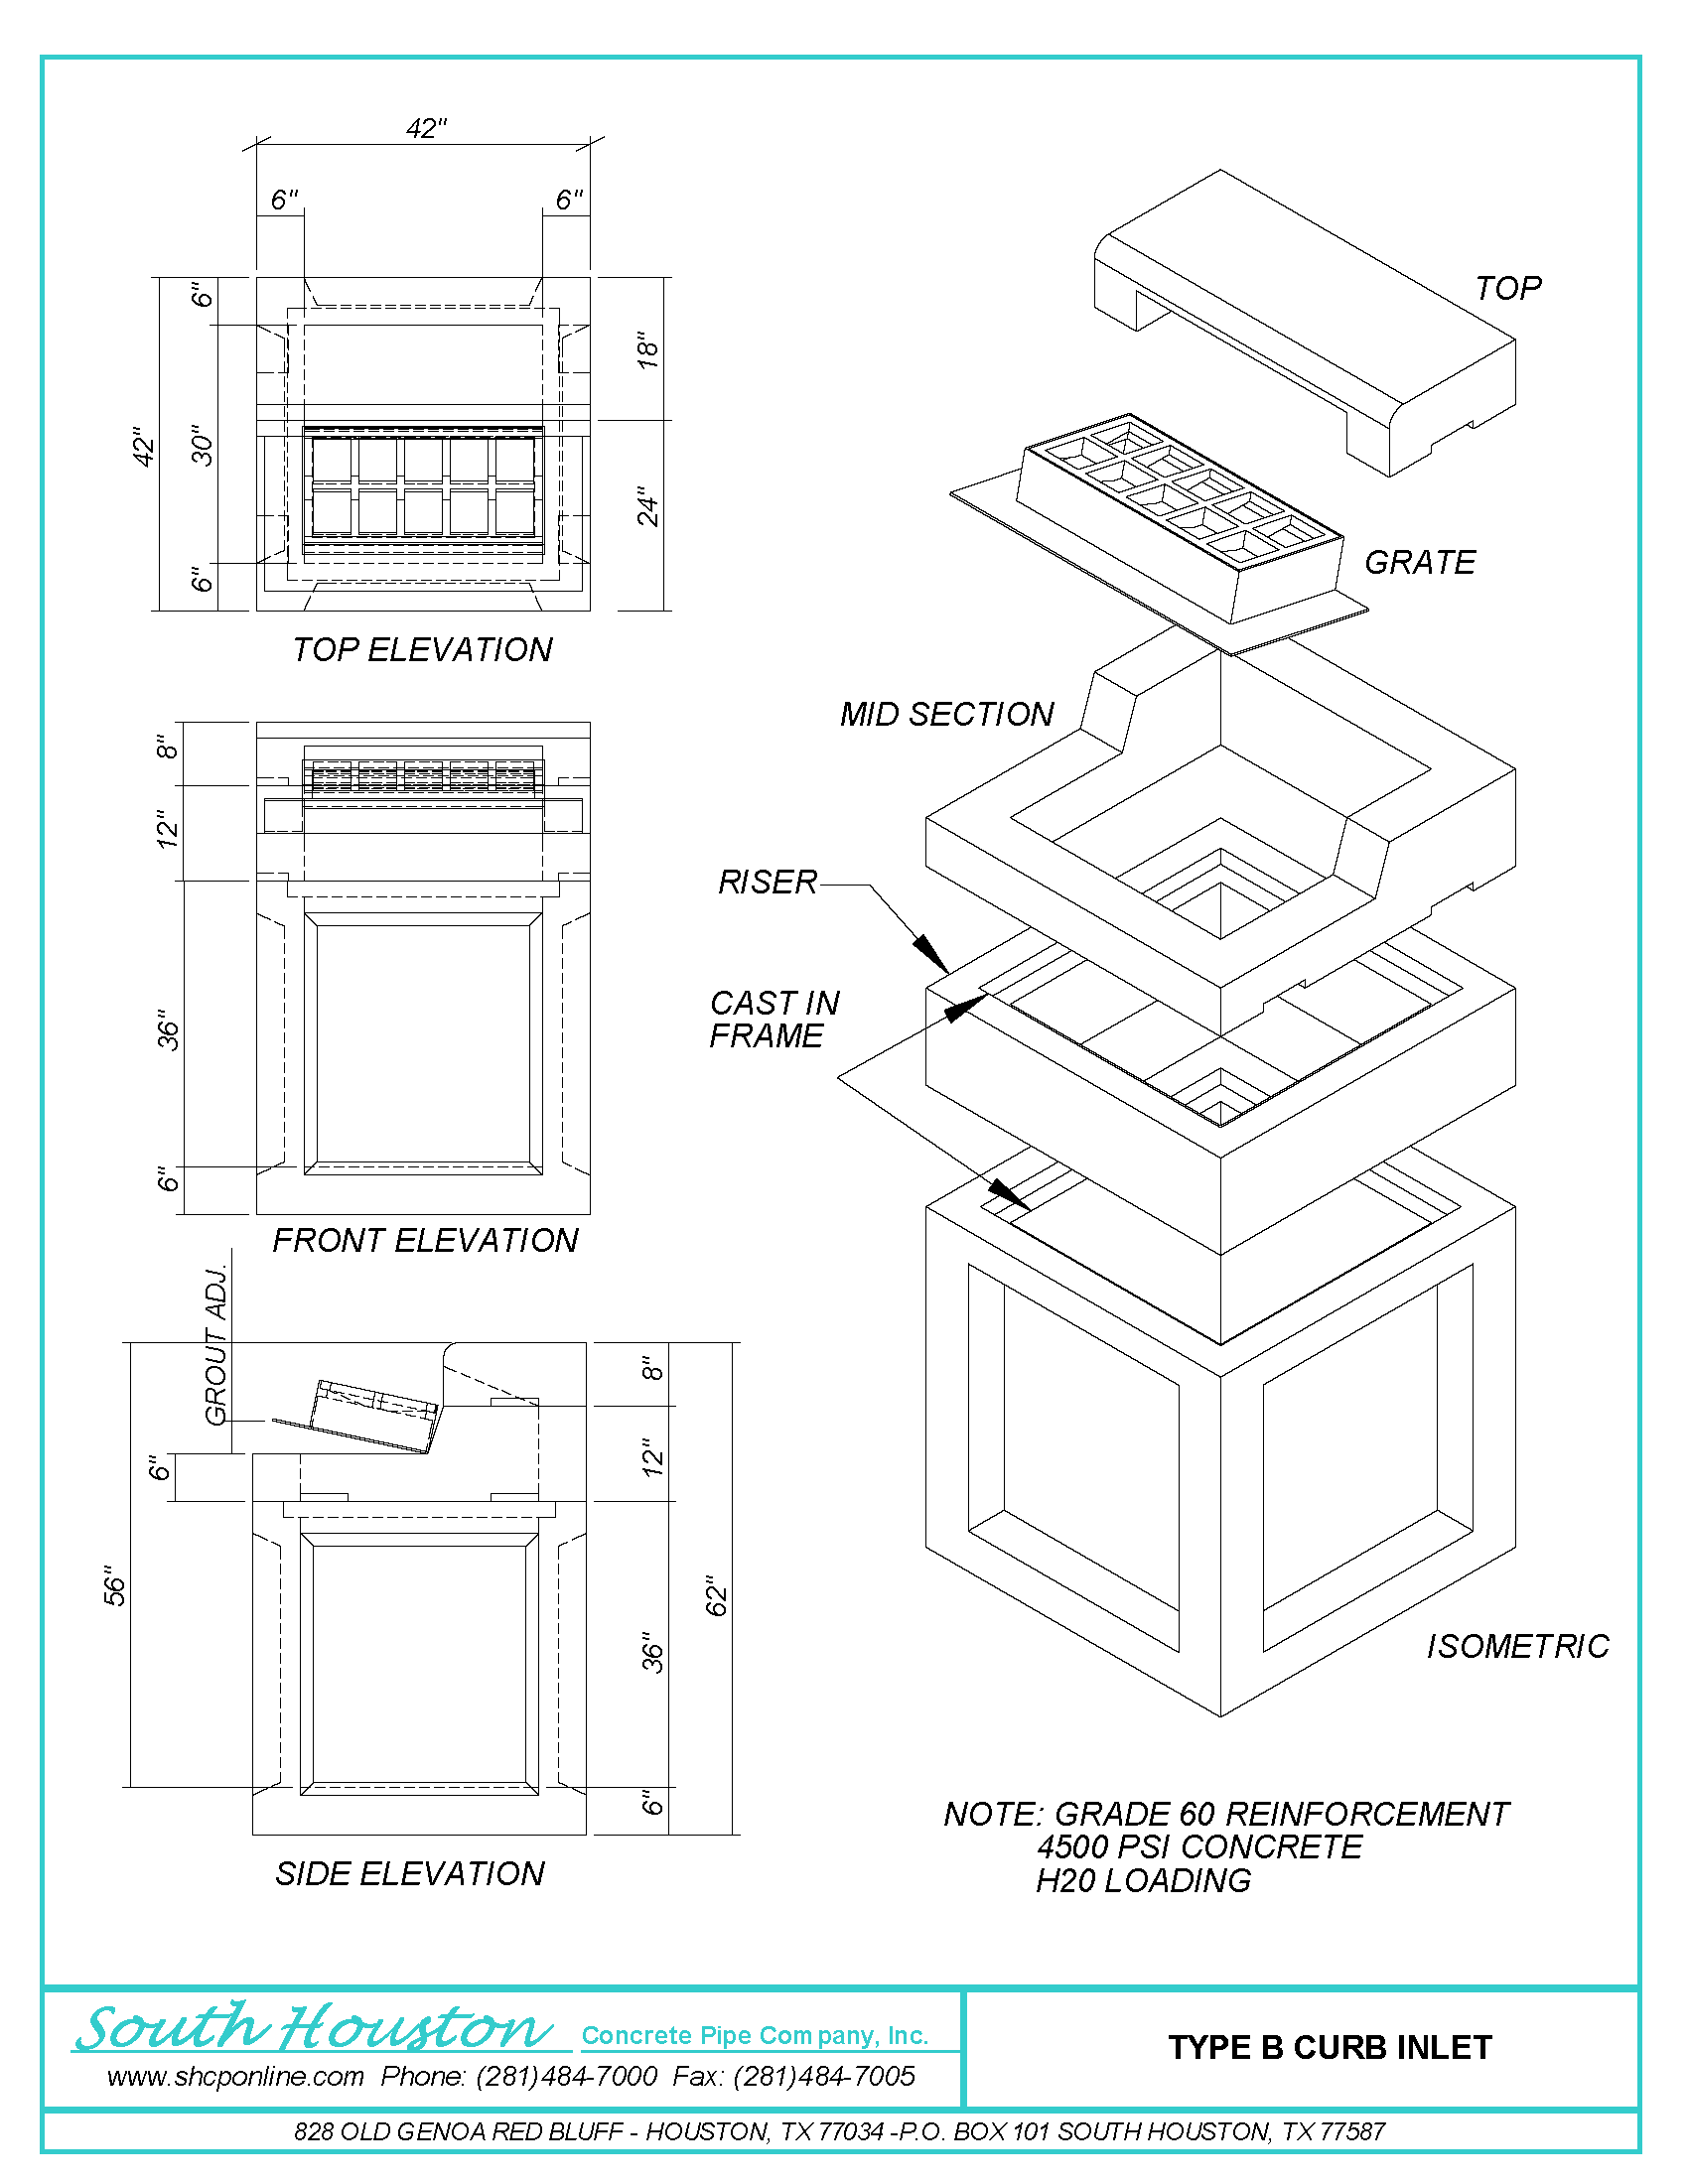 Heavy Duty Steel Grating Information, Types and Order